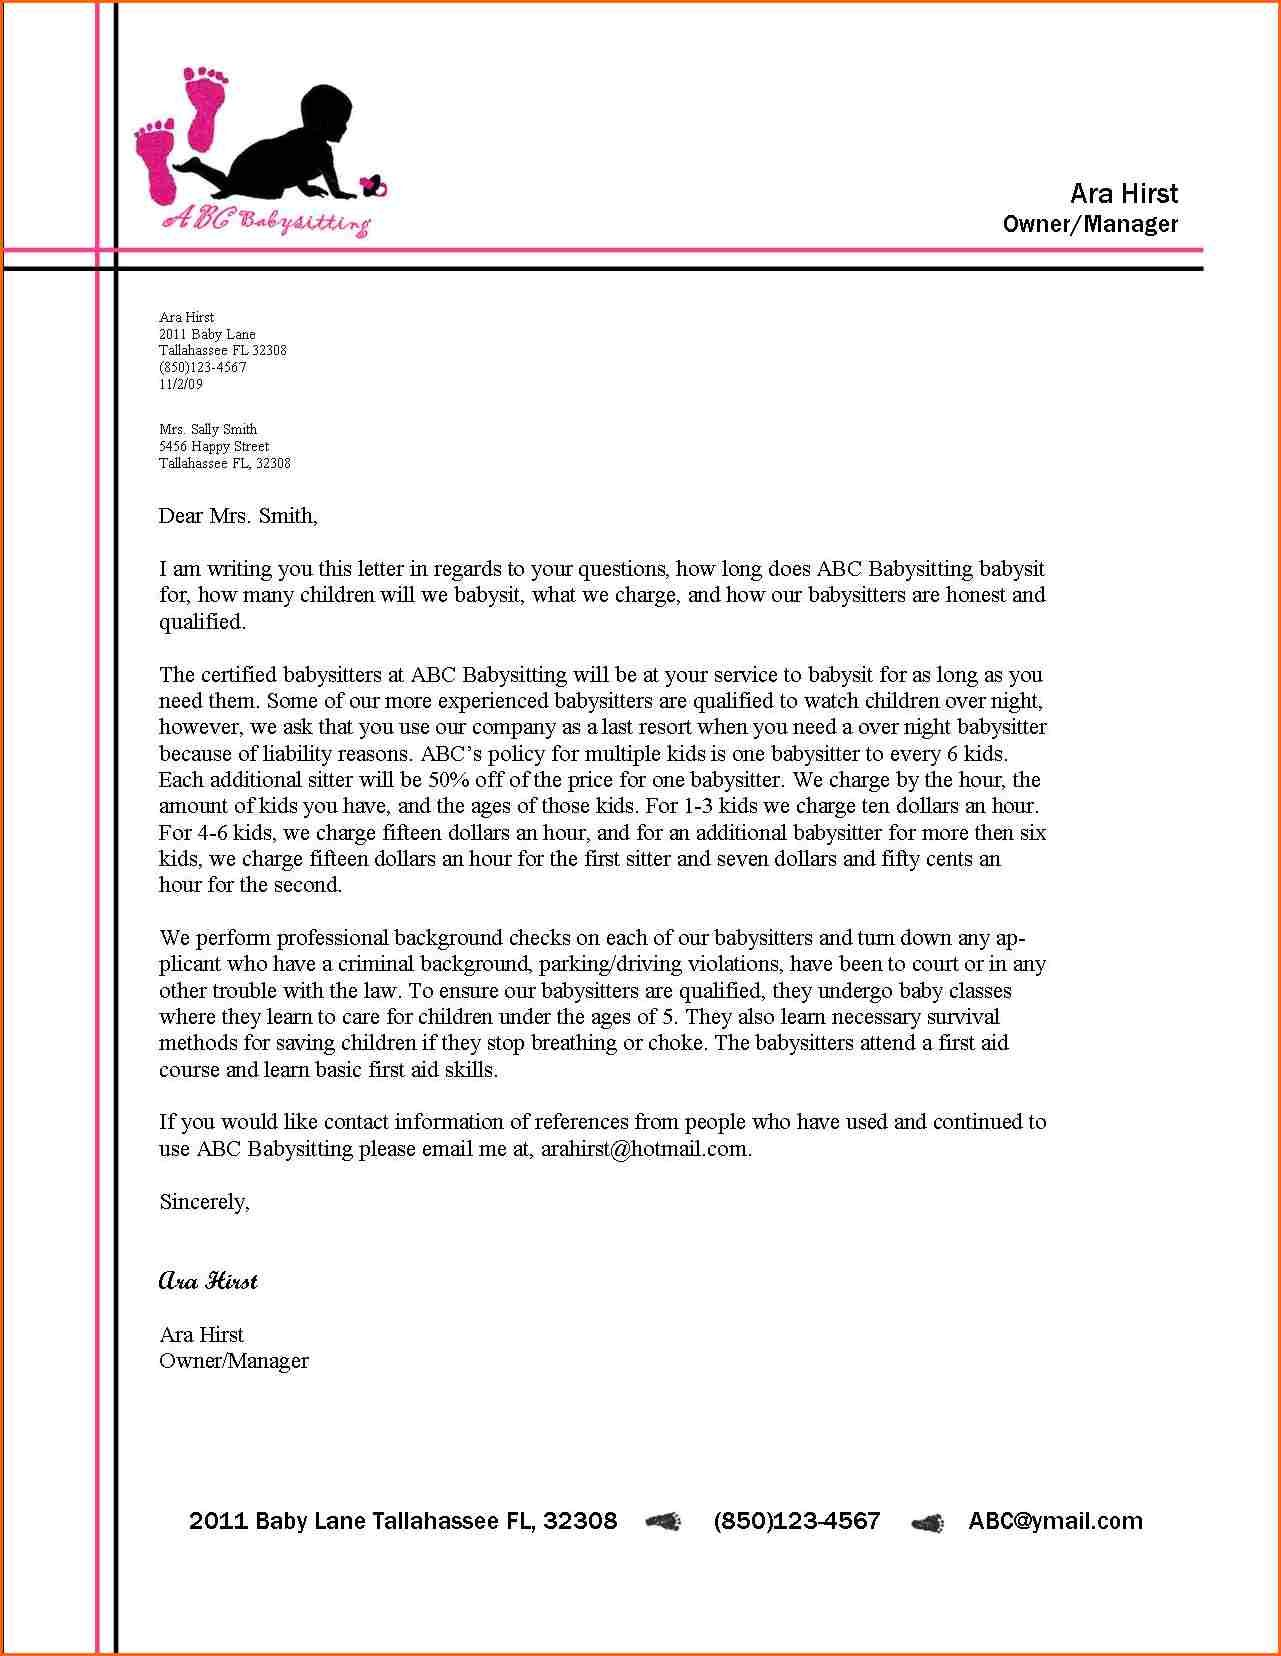 Business Letter Format Letterhead Example Alberta Education Links Samples  Student Writing